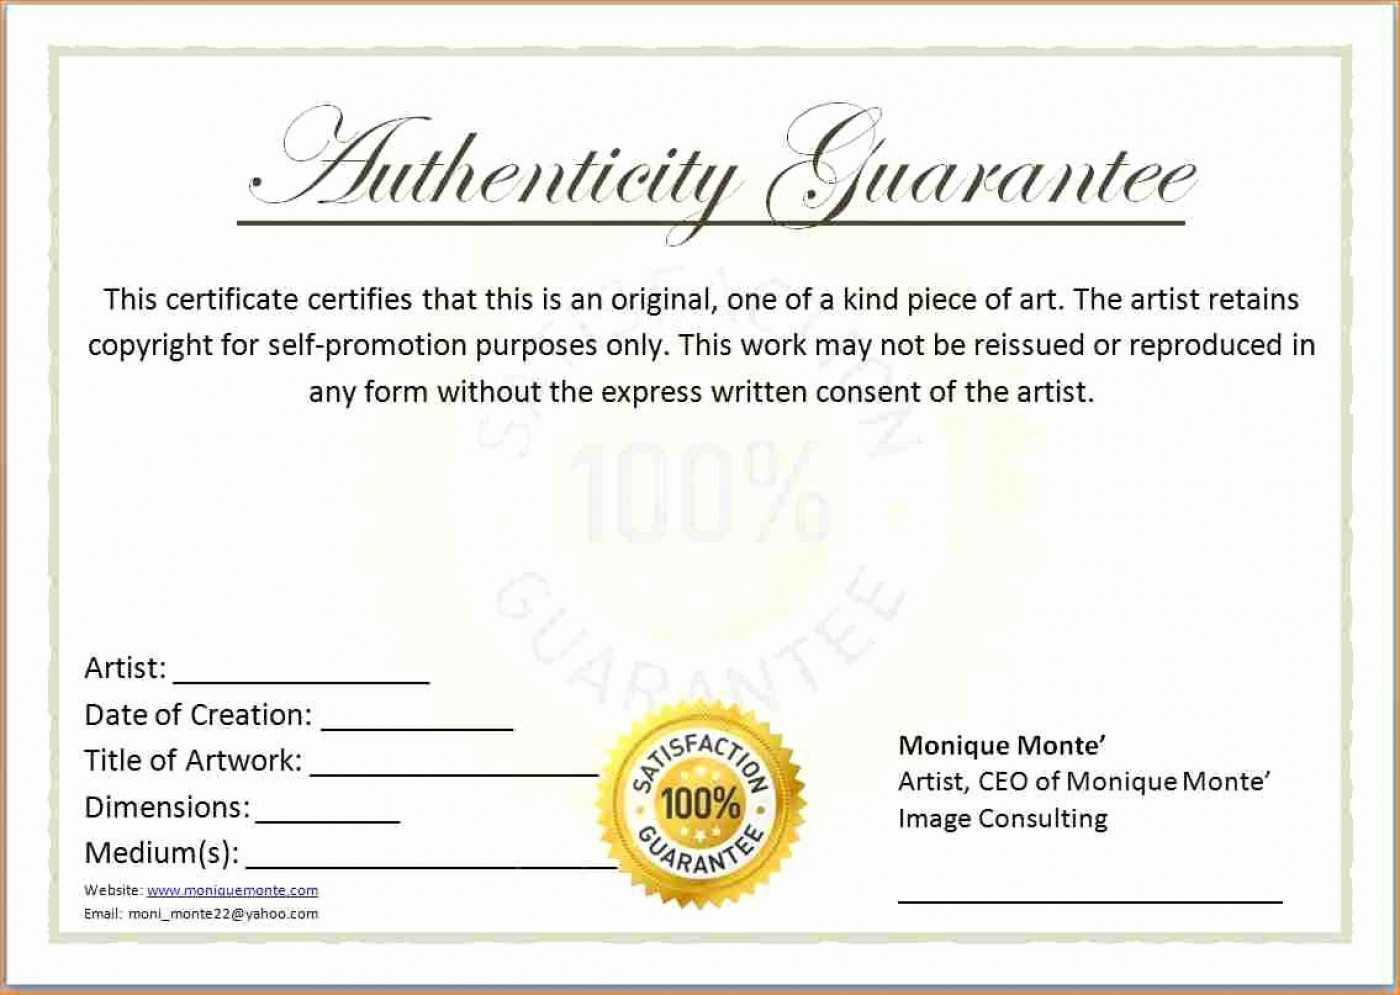 015 Certificate Of Authenticity Template Free Unique Ideas In Certificate Of Authenticity Template